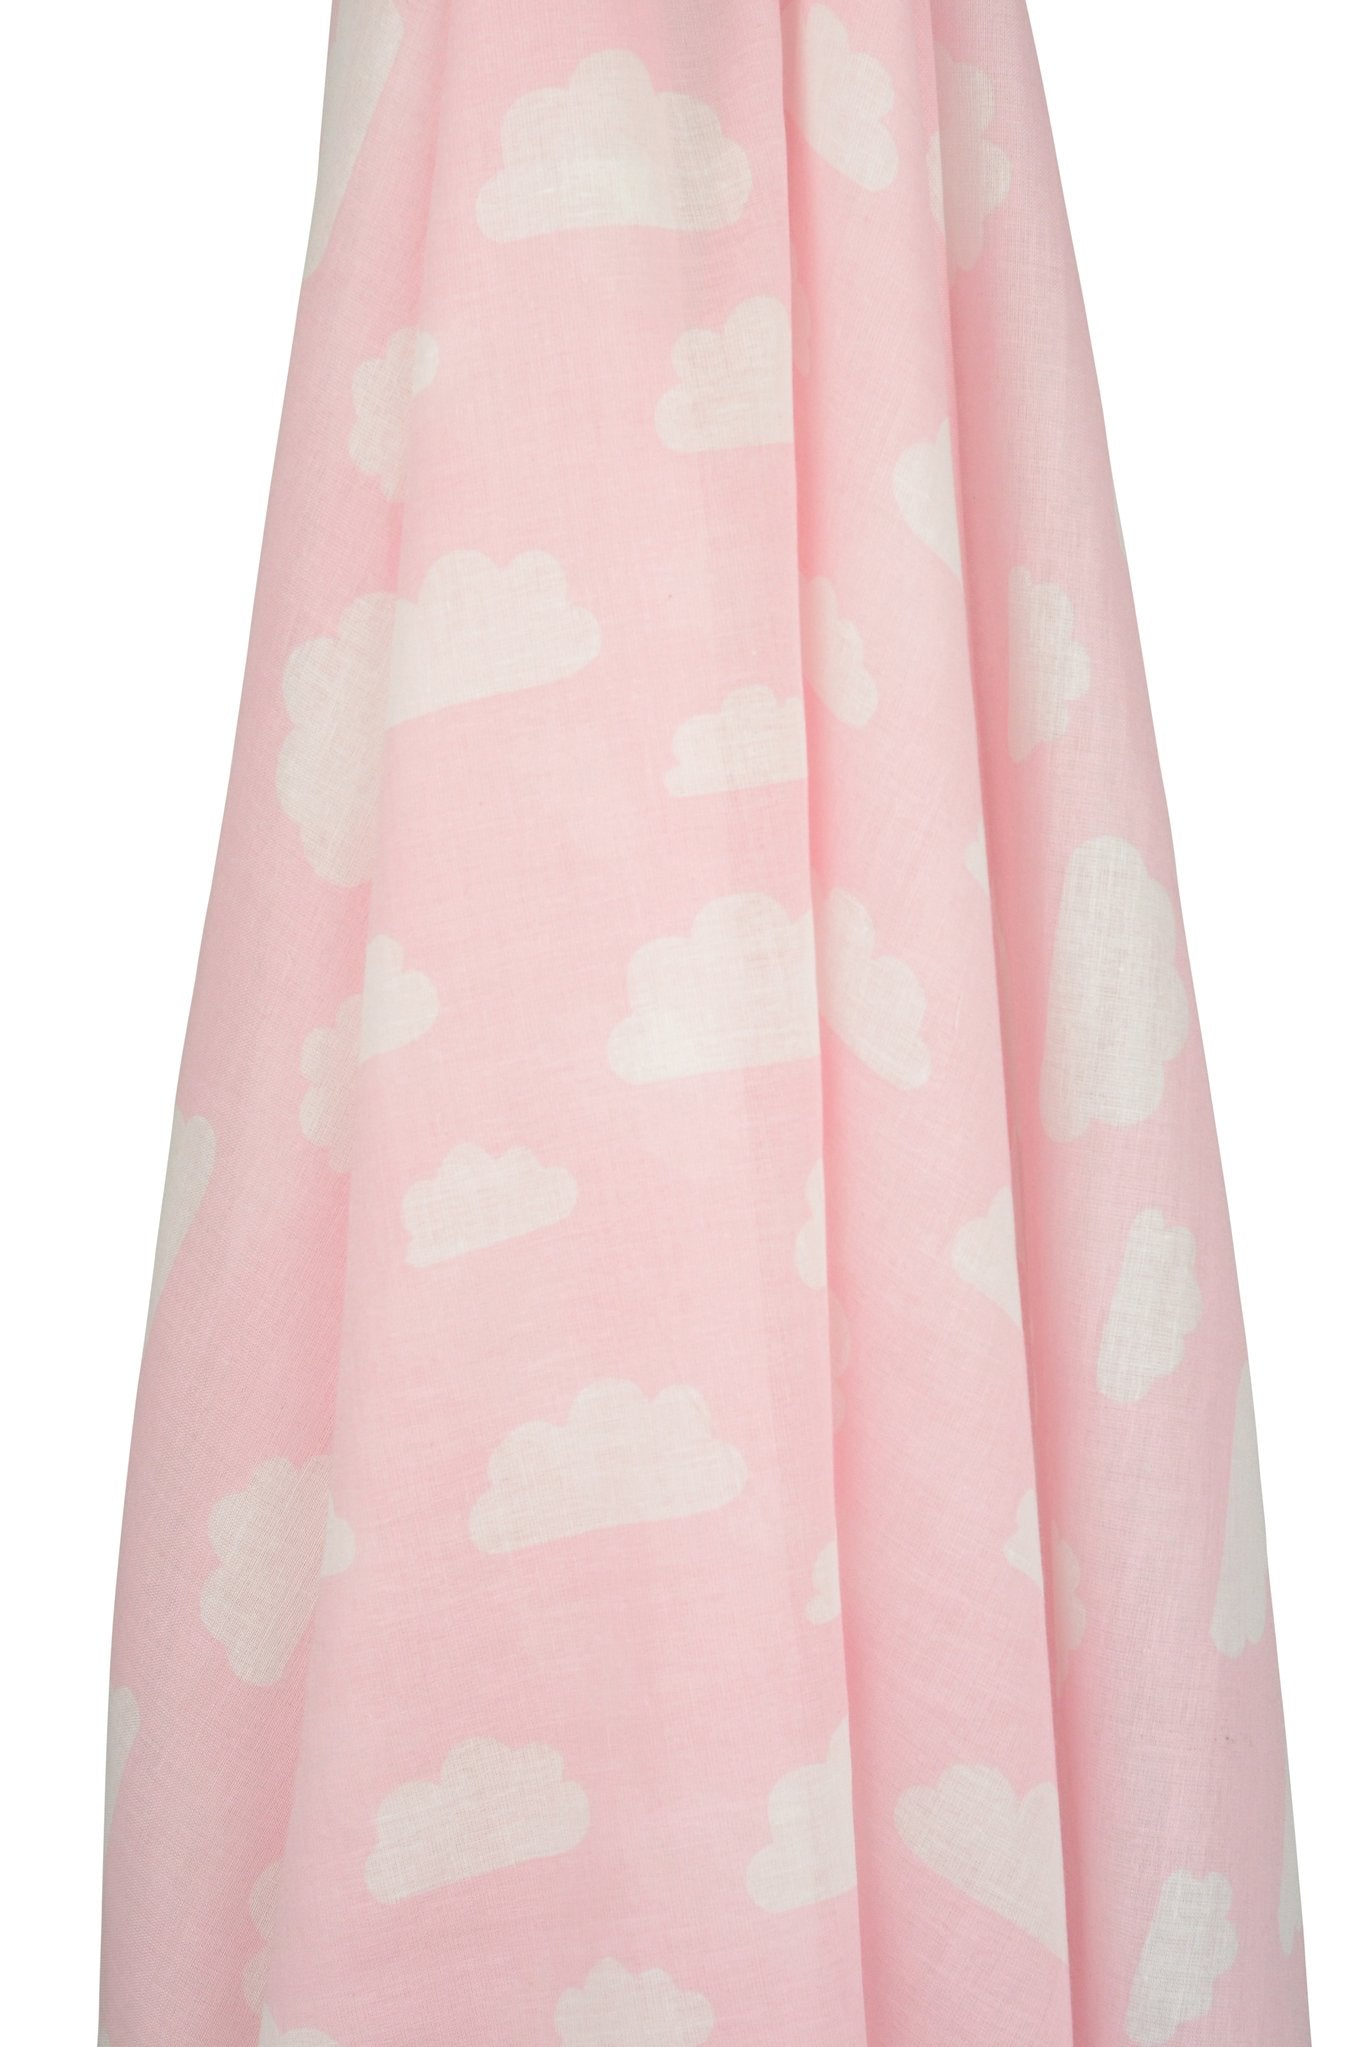 EMOTION & KIDS Clouds Muslin Wrap (Blue / Grey / Pink)